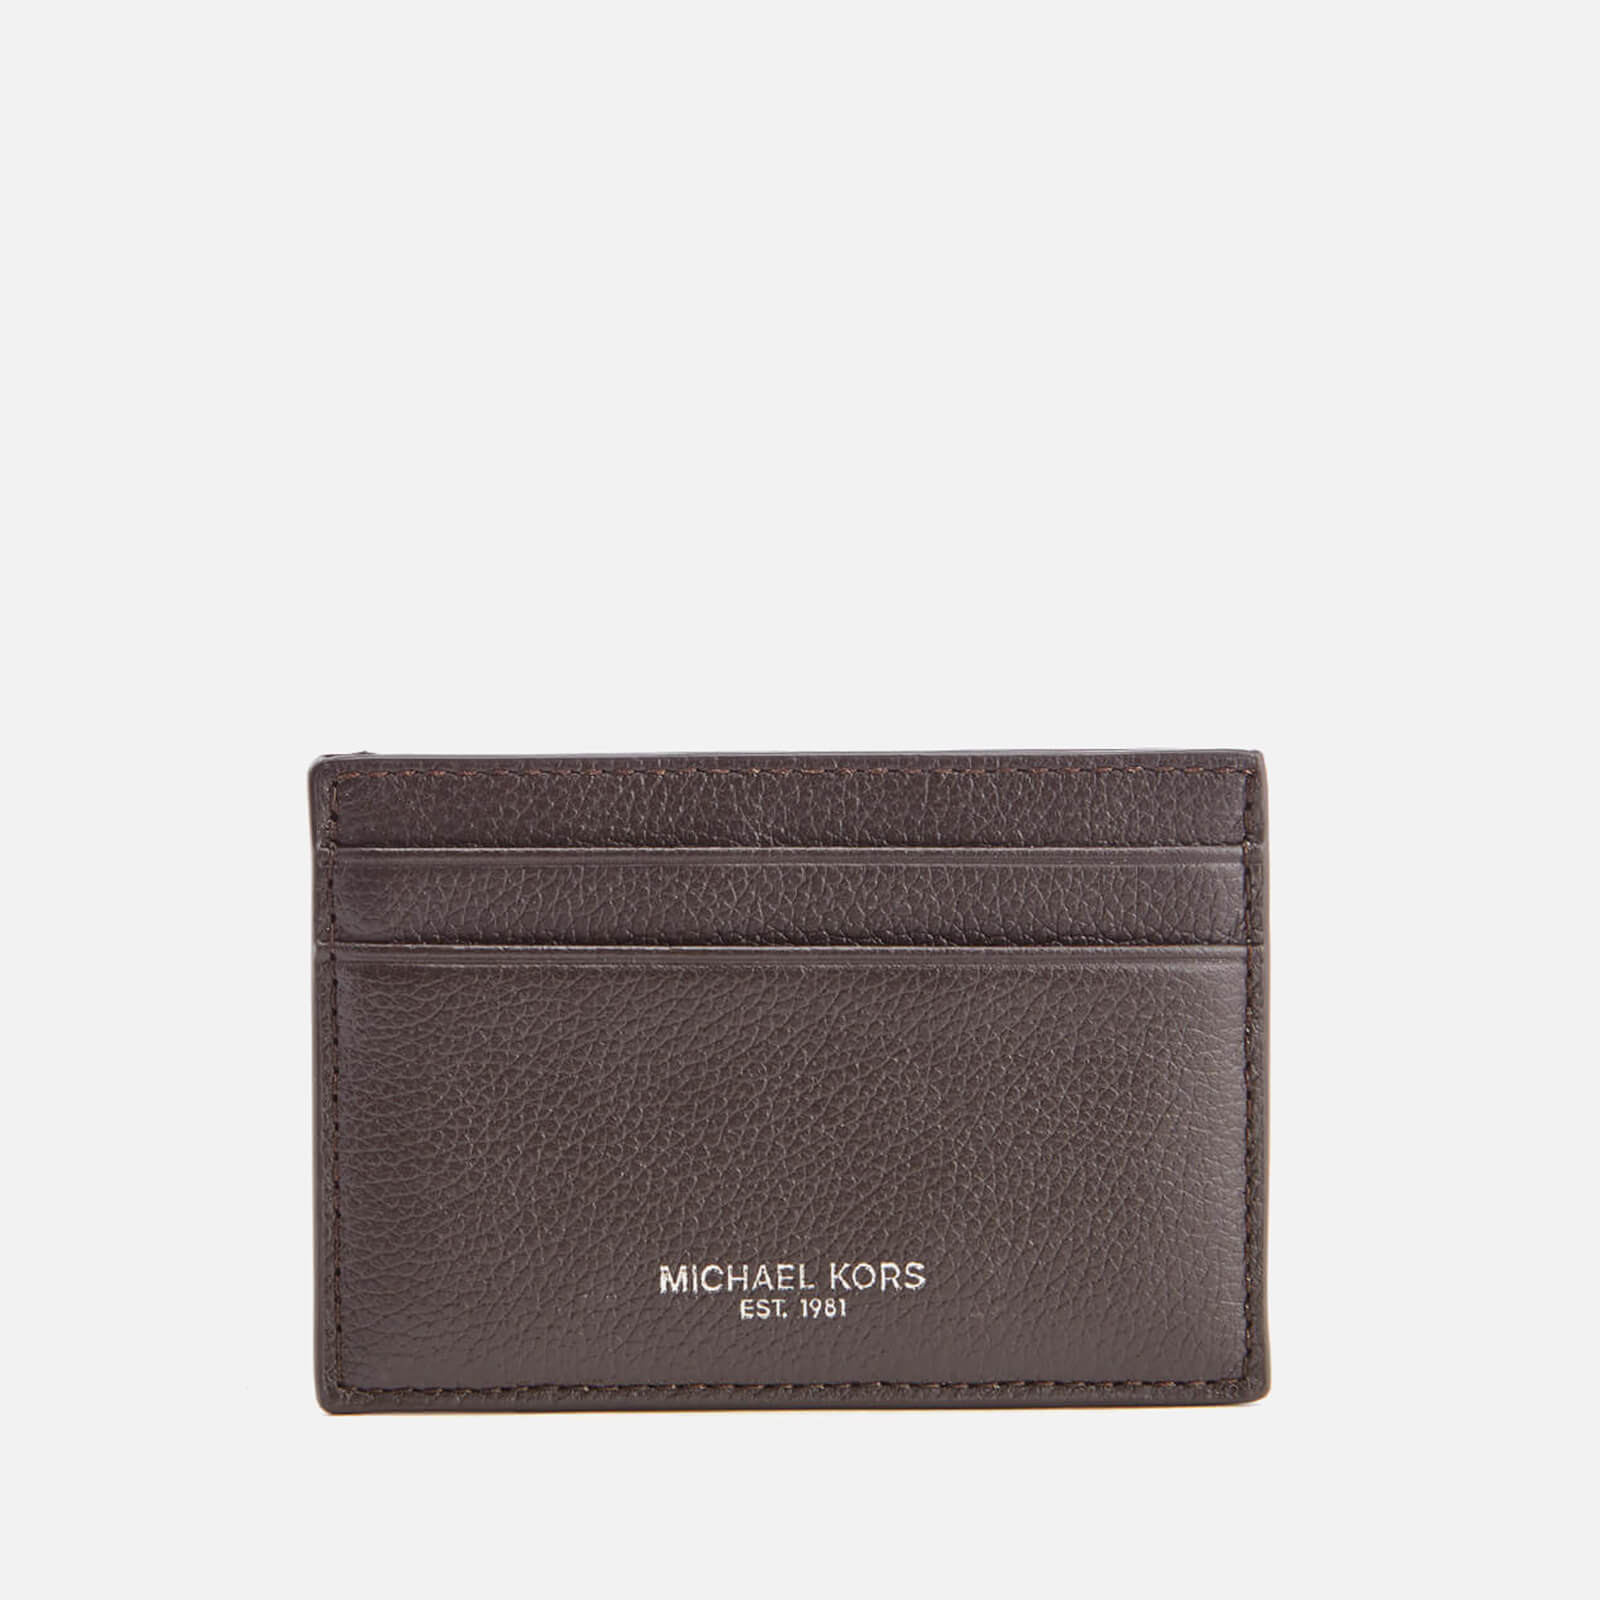 940176b043 Michael Kors Men's Bryant Card Case - Brown - Free UK Delivery over £50